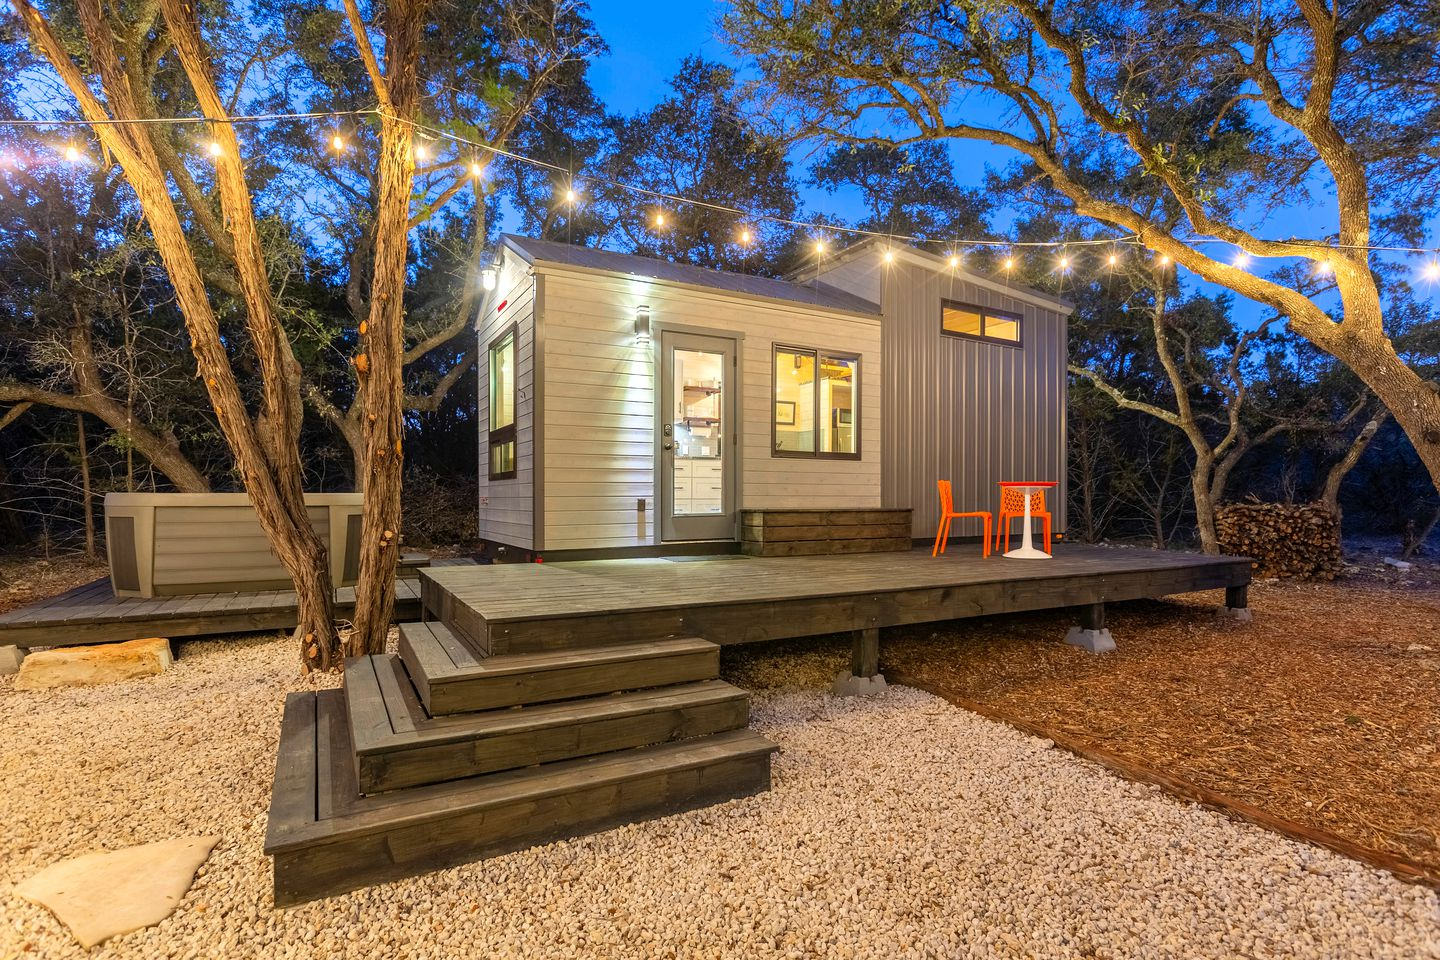 Home cash buyers in Wimberly TX